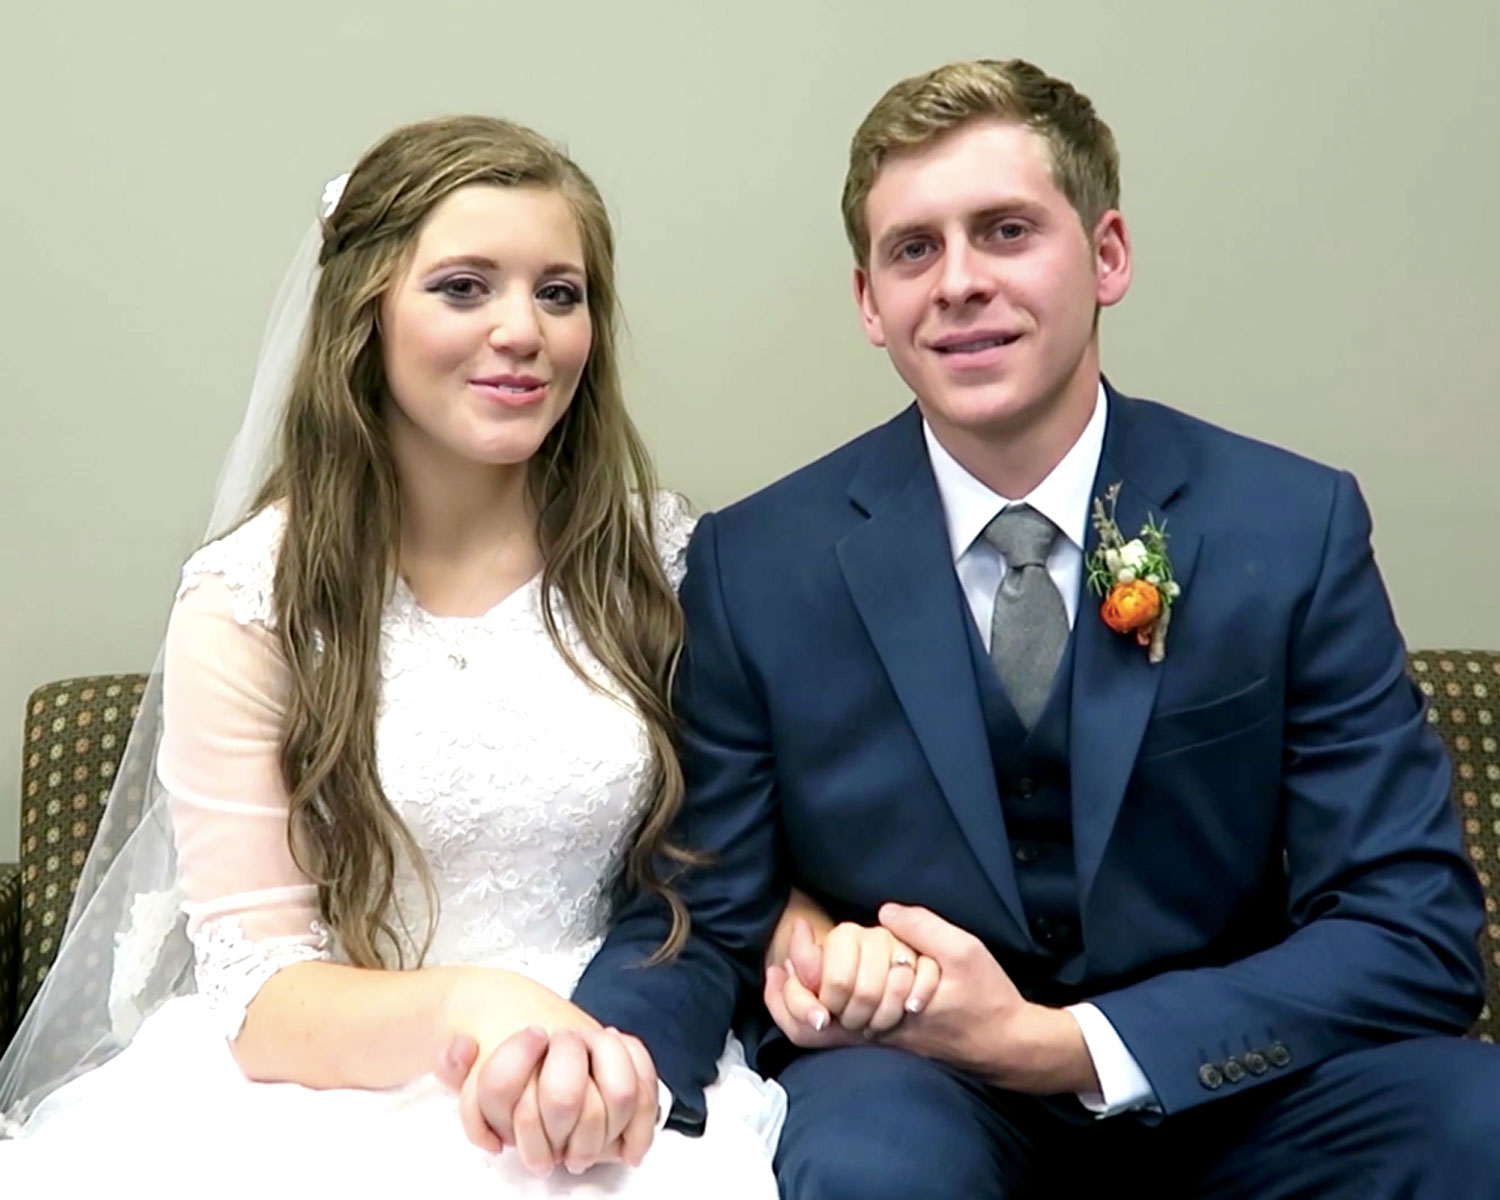 duggar dating tips Consulting and supervision your project will be overseen by the guy who founded the wordpress community in slovakia he will work with your contractors to ensure that everything runs smoothly or are you looking for some valuable advice before starting a project no problem contact us contact us.